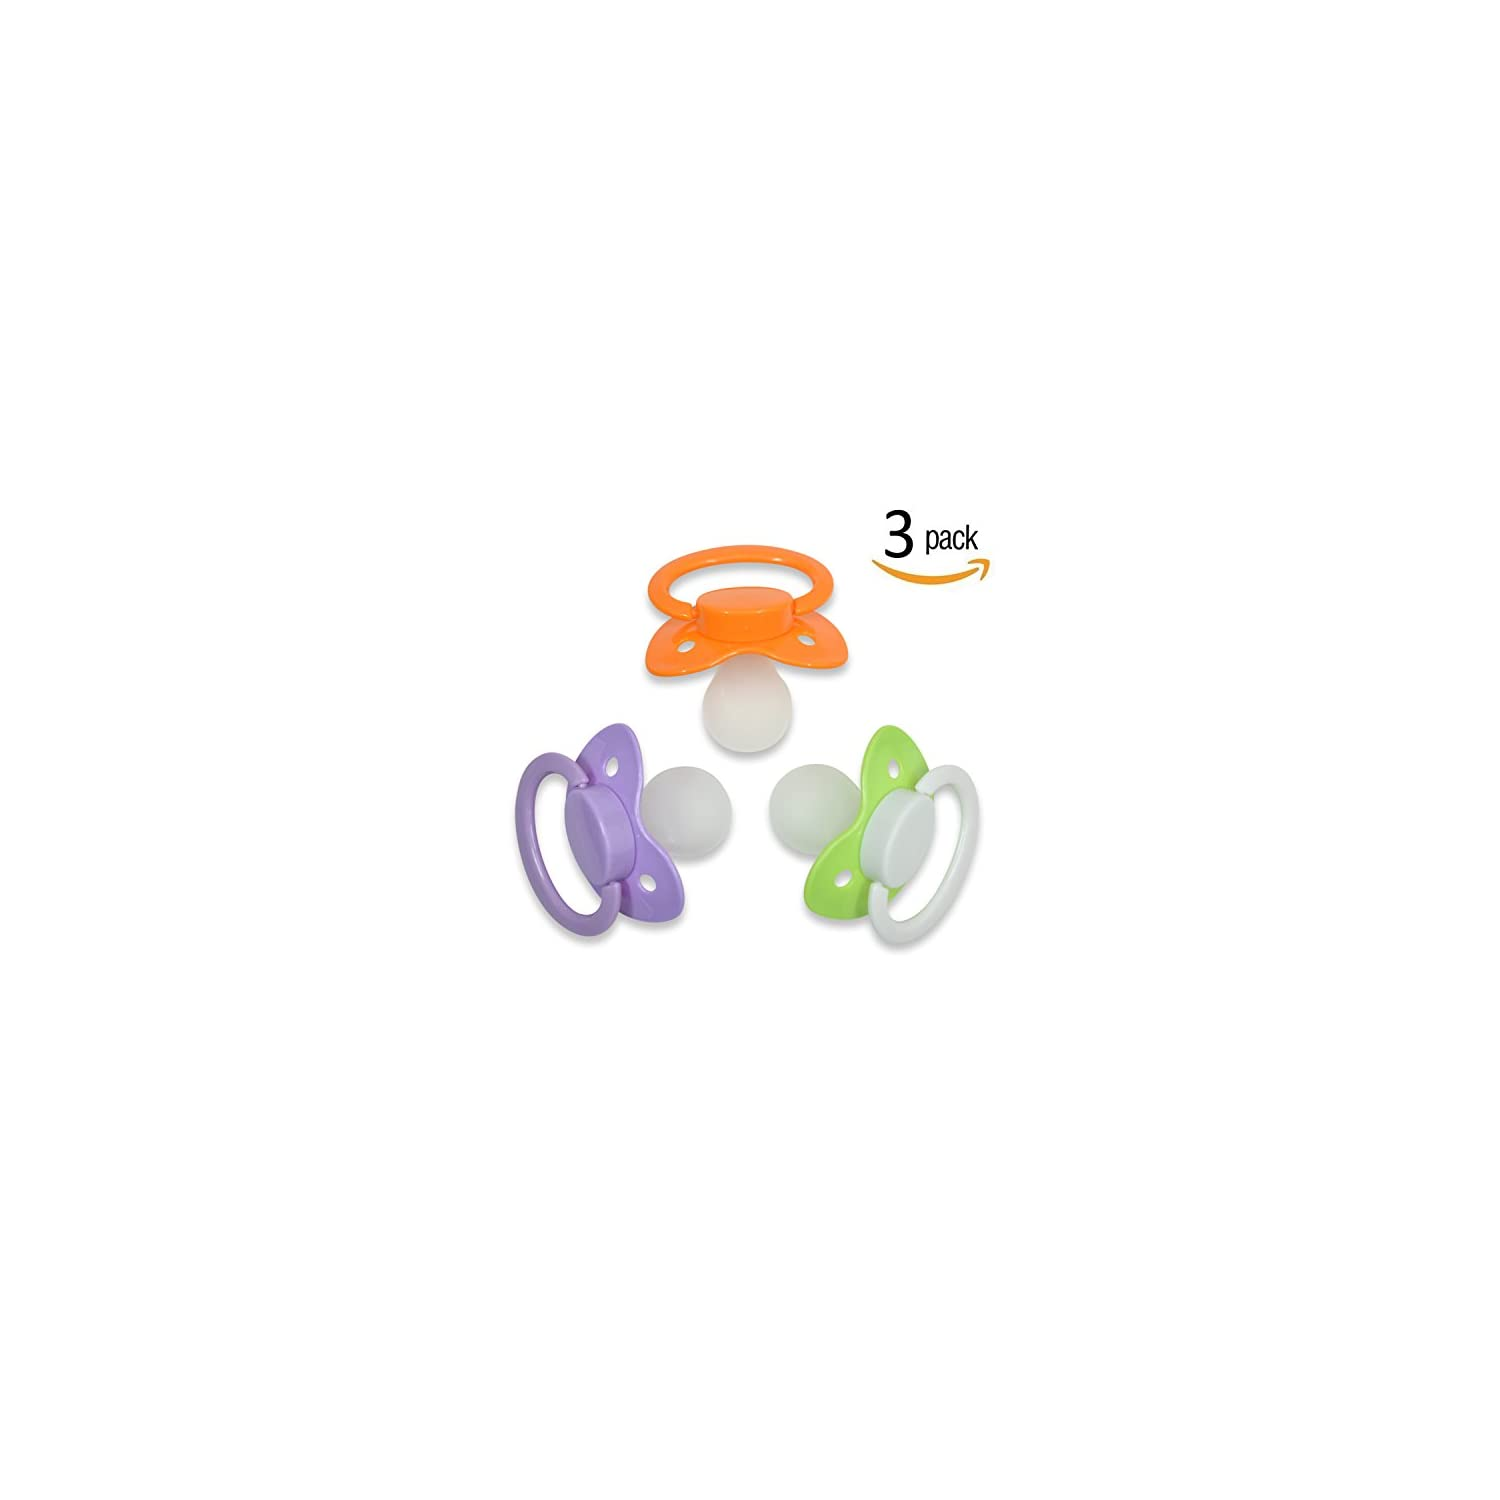 Adult Sized Pacifier ABDL Dummy for Adult Babies Three Color Pack Crazy Green Purple Lust & Shy Orange